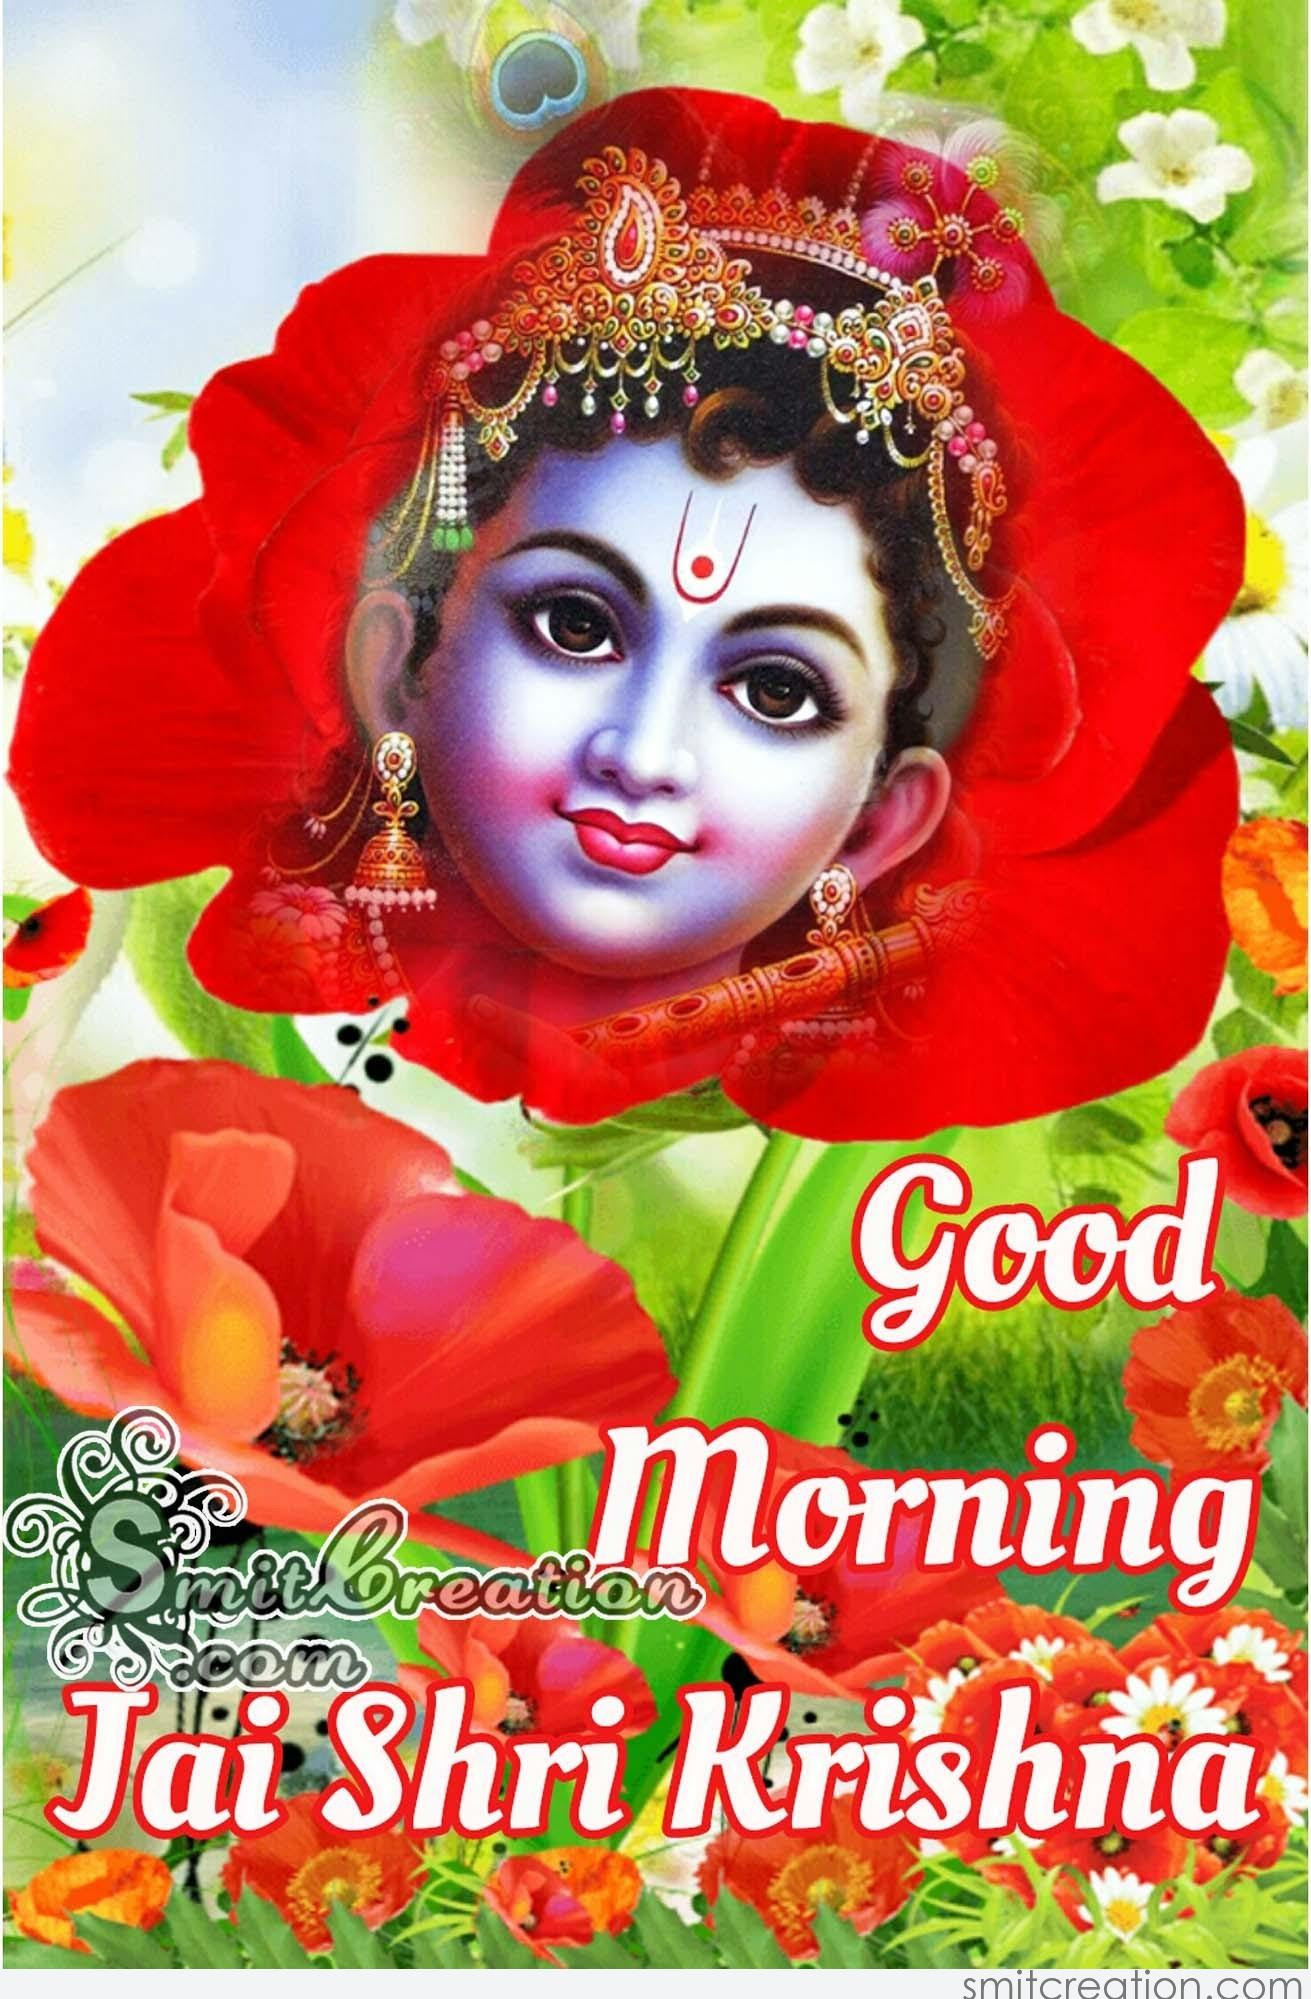 Good Morning Images With God Krishna Top Colection For Greeting